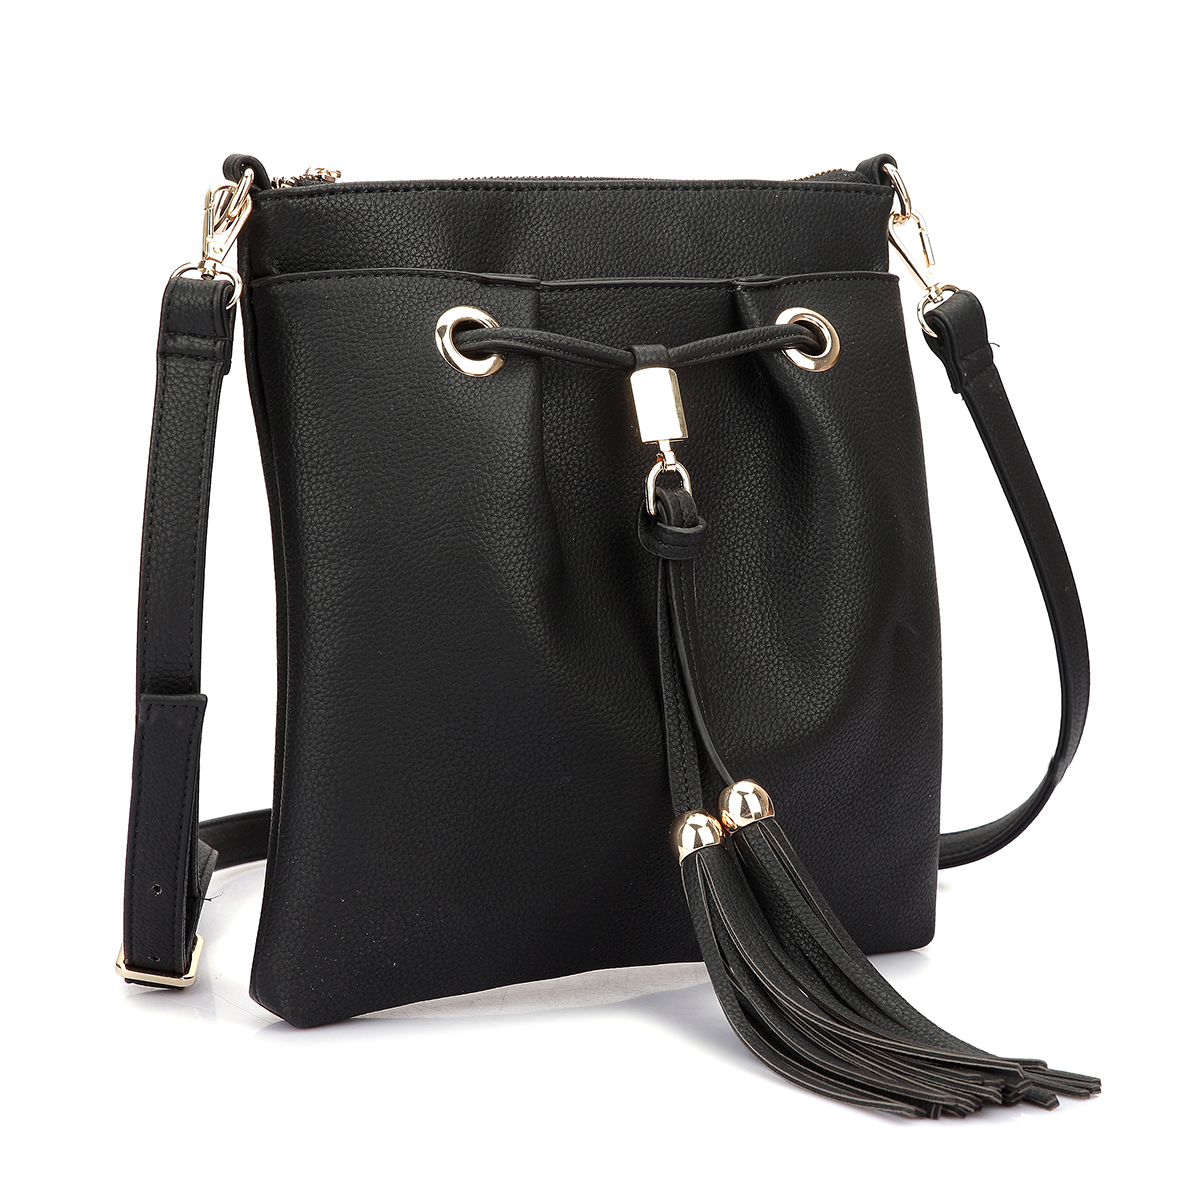 Crossbody bag with fringe details